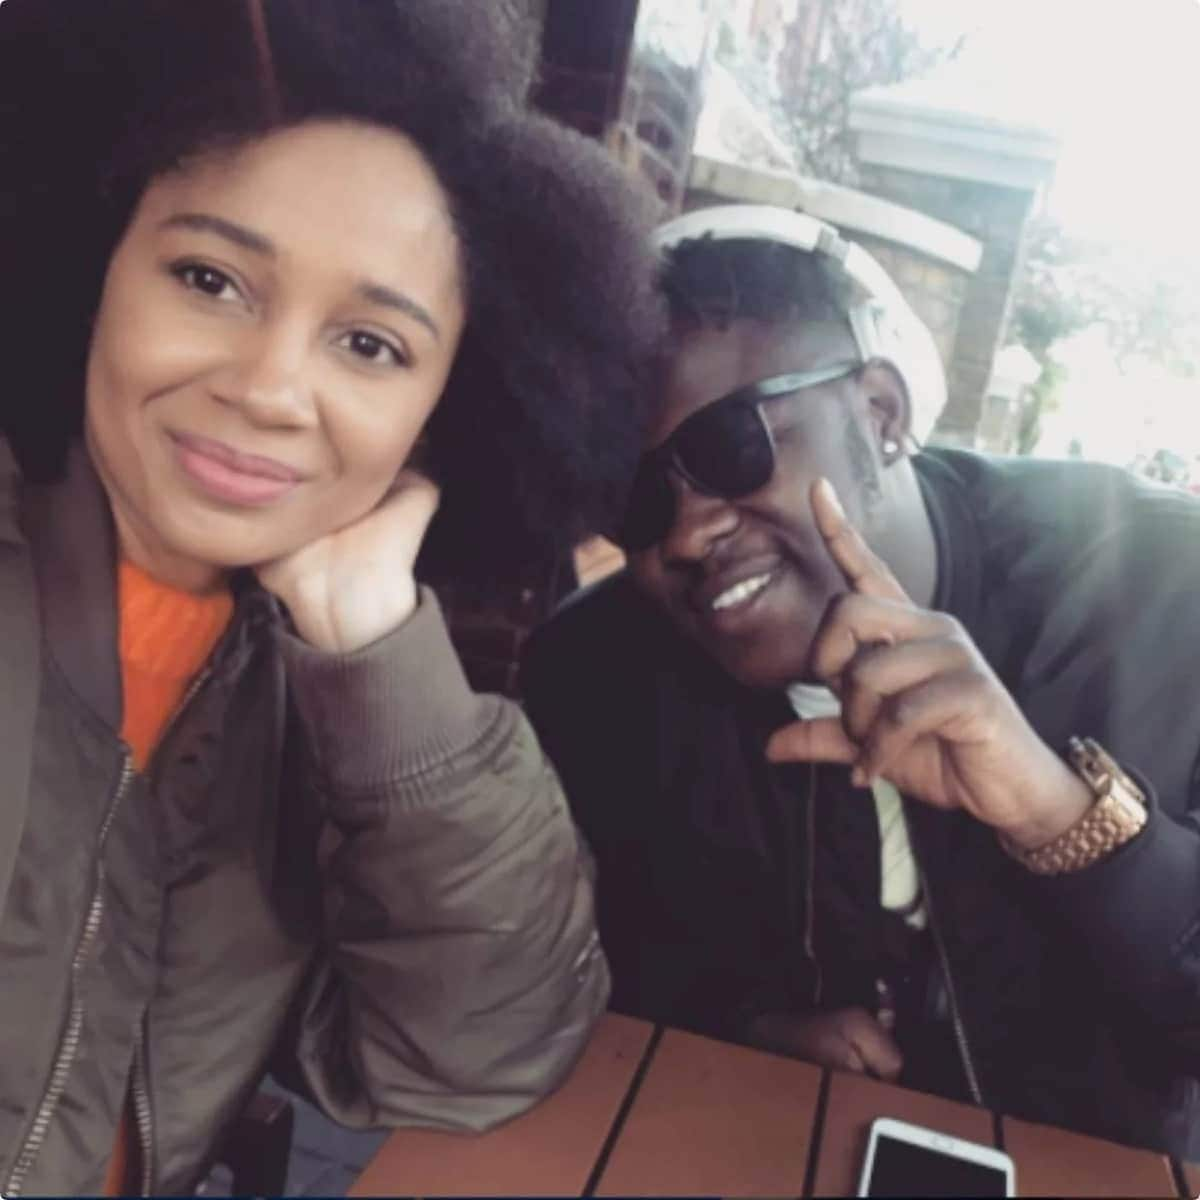 Deborah Vanessa wrms social media with lovey-dovey picture with her boyfriend Medikal